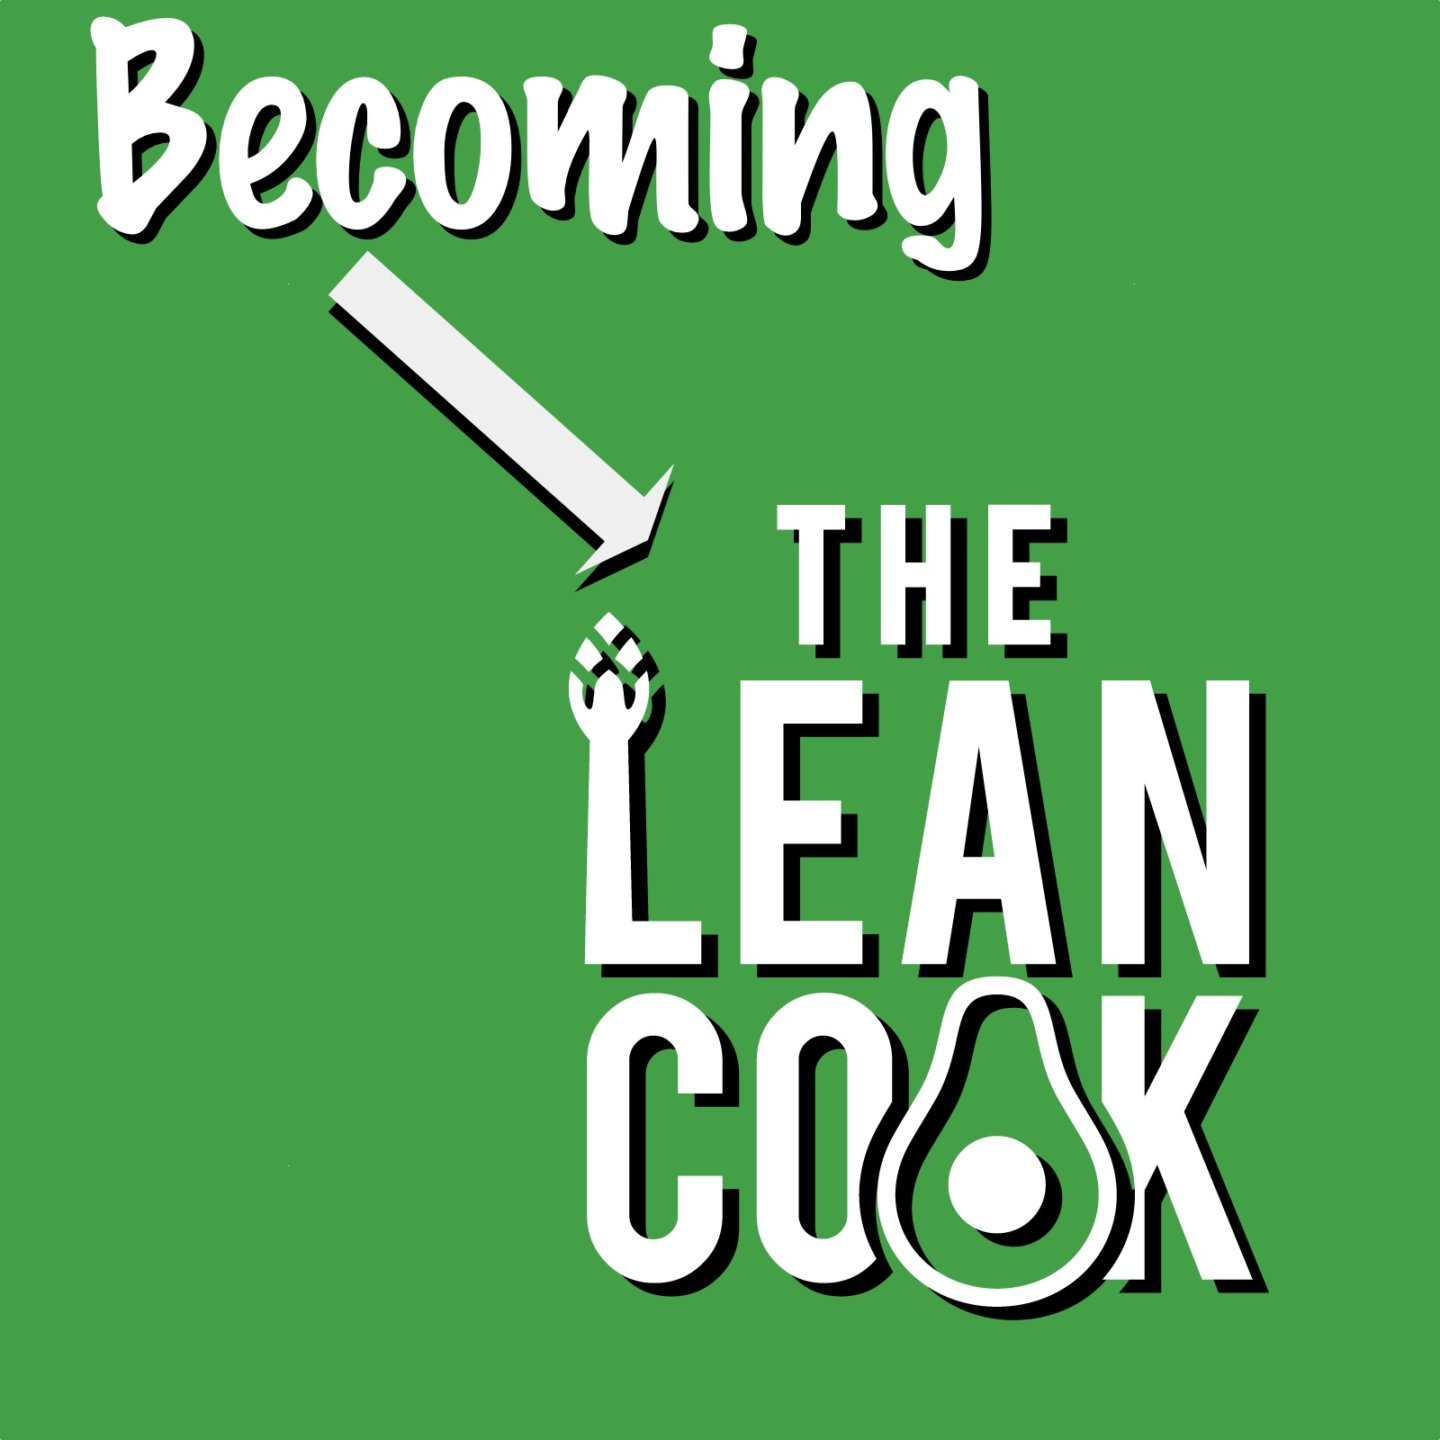 New challenges, new goals and becoming The Lean Cook